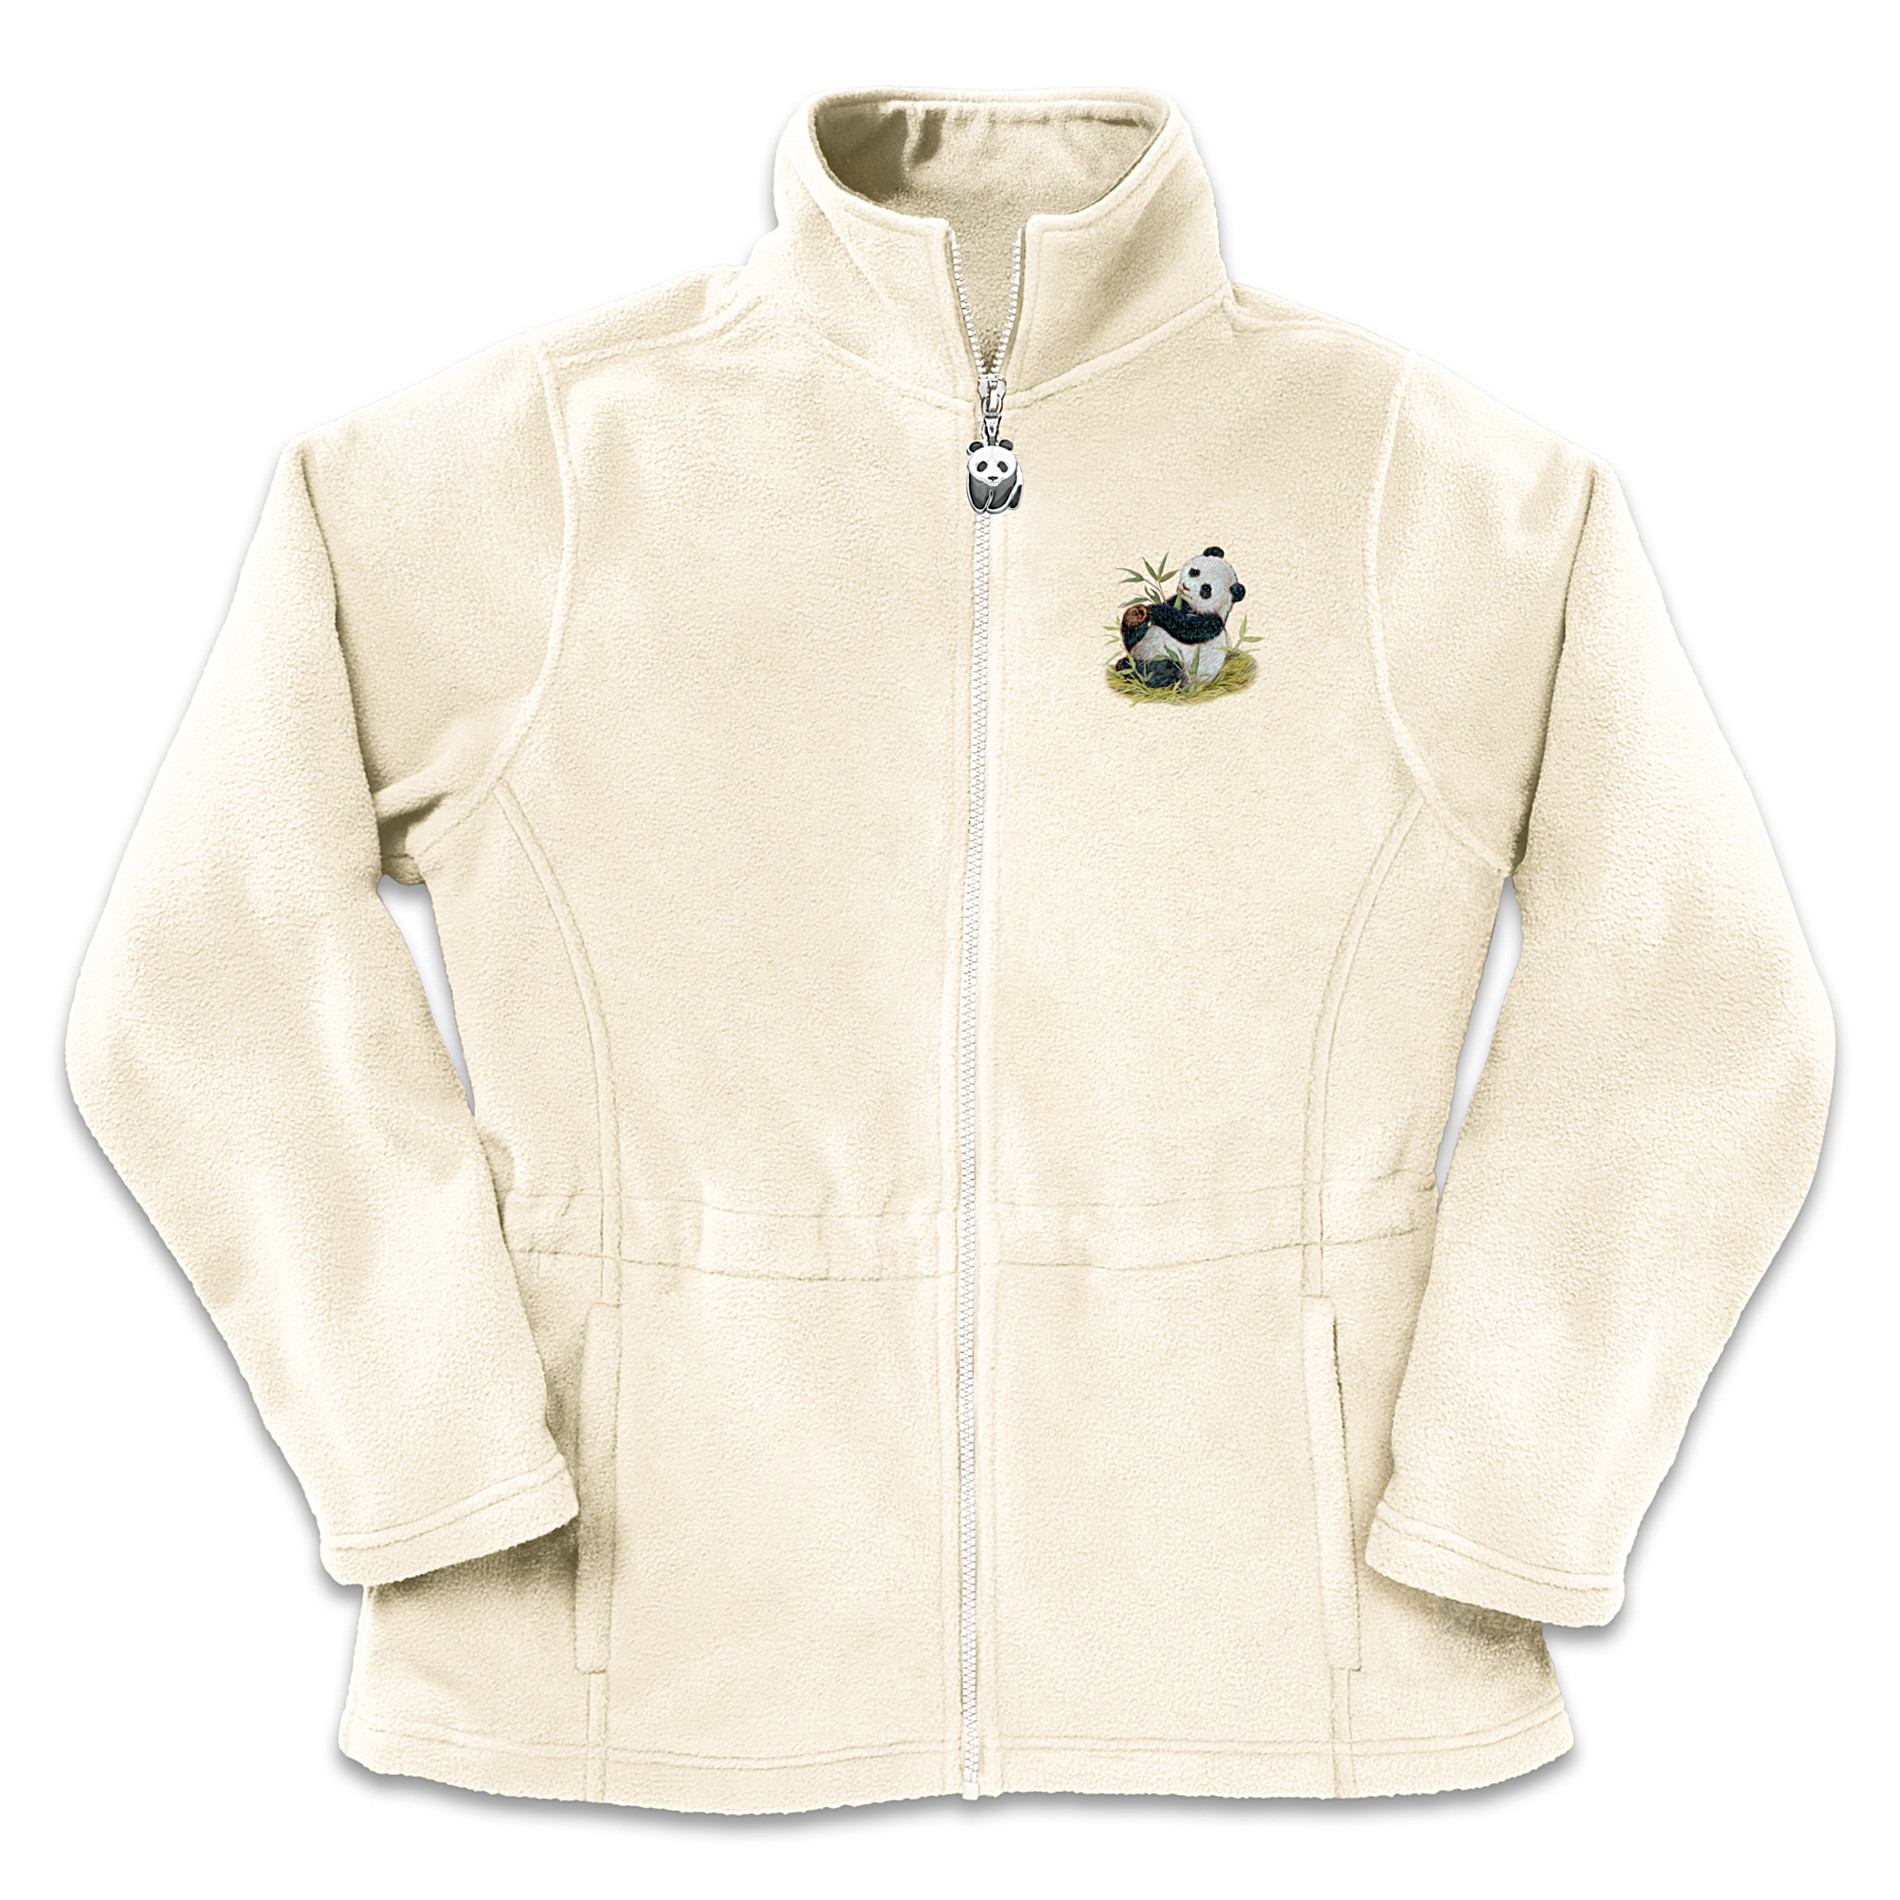 The Bradford Exchange Panda Art Women's Fleece Jacket: Mother's Love at Sears.com